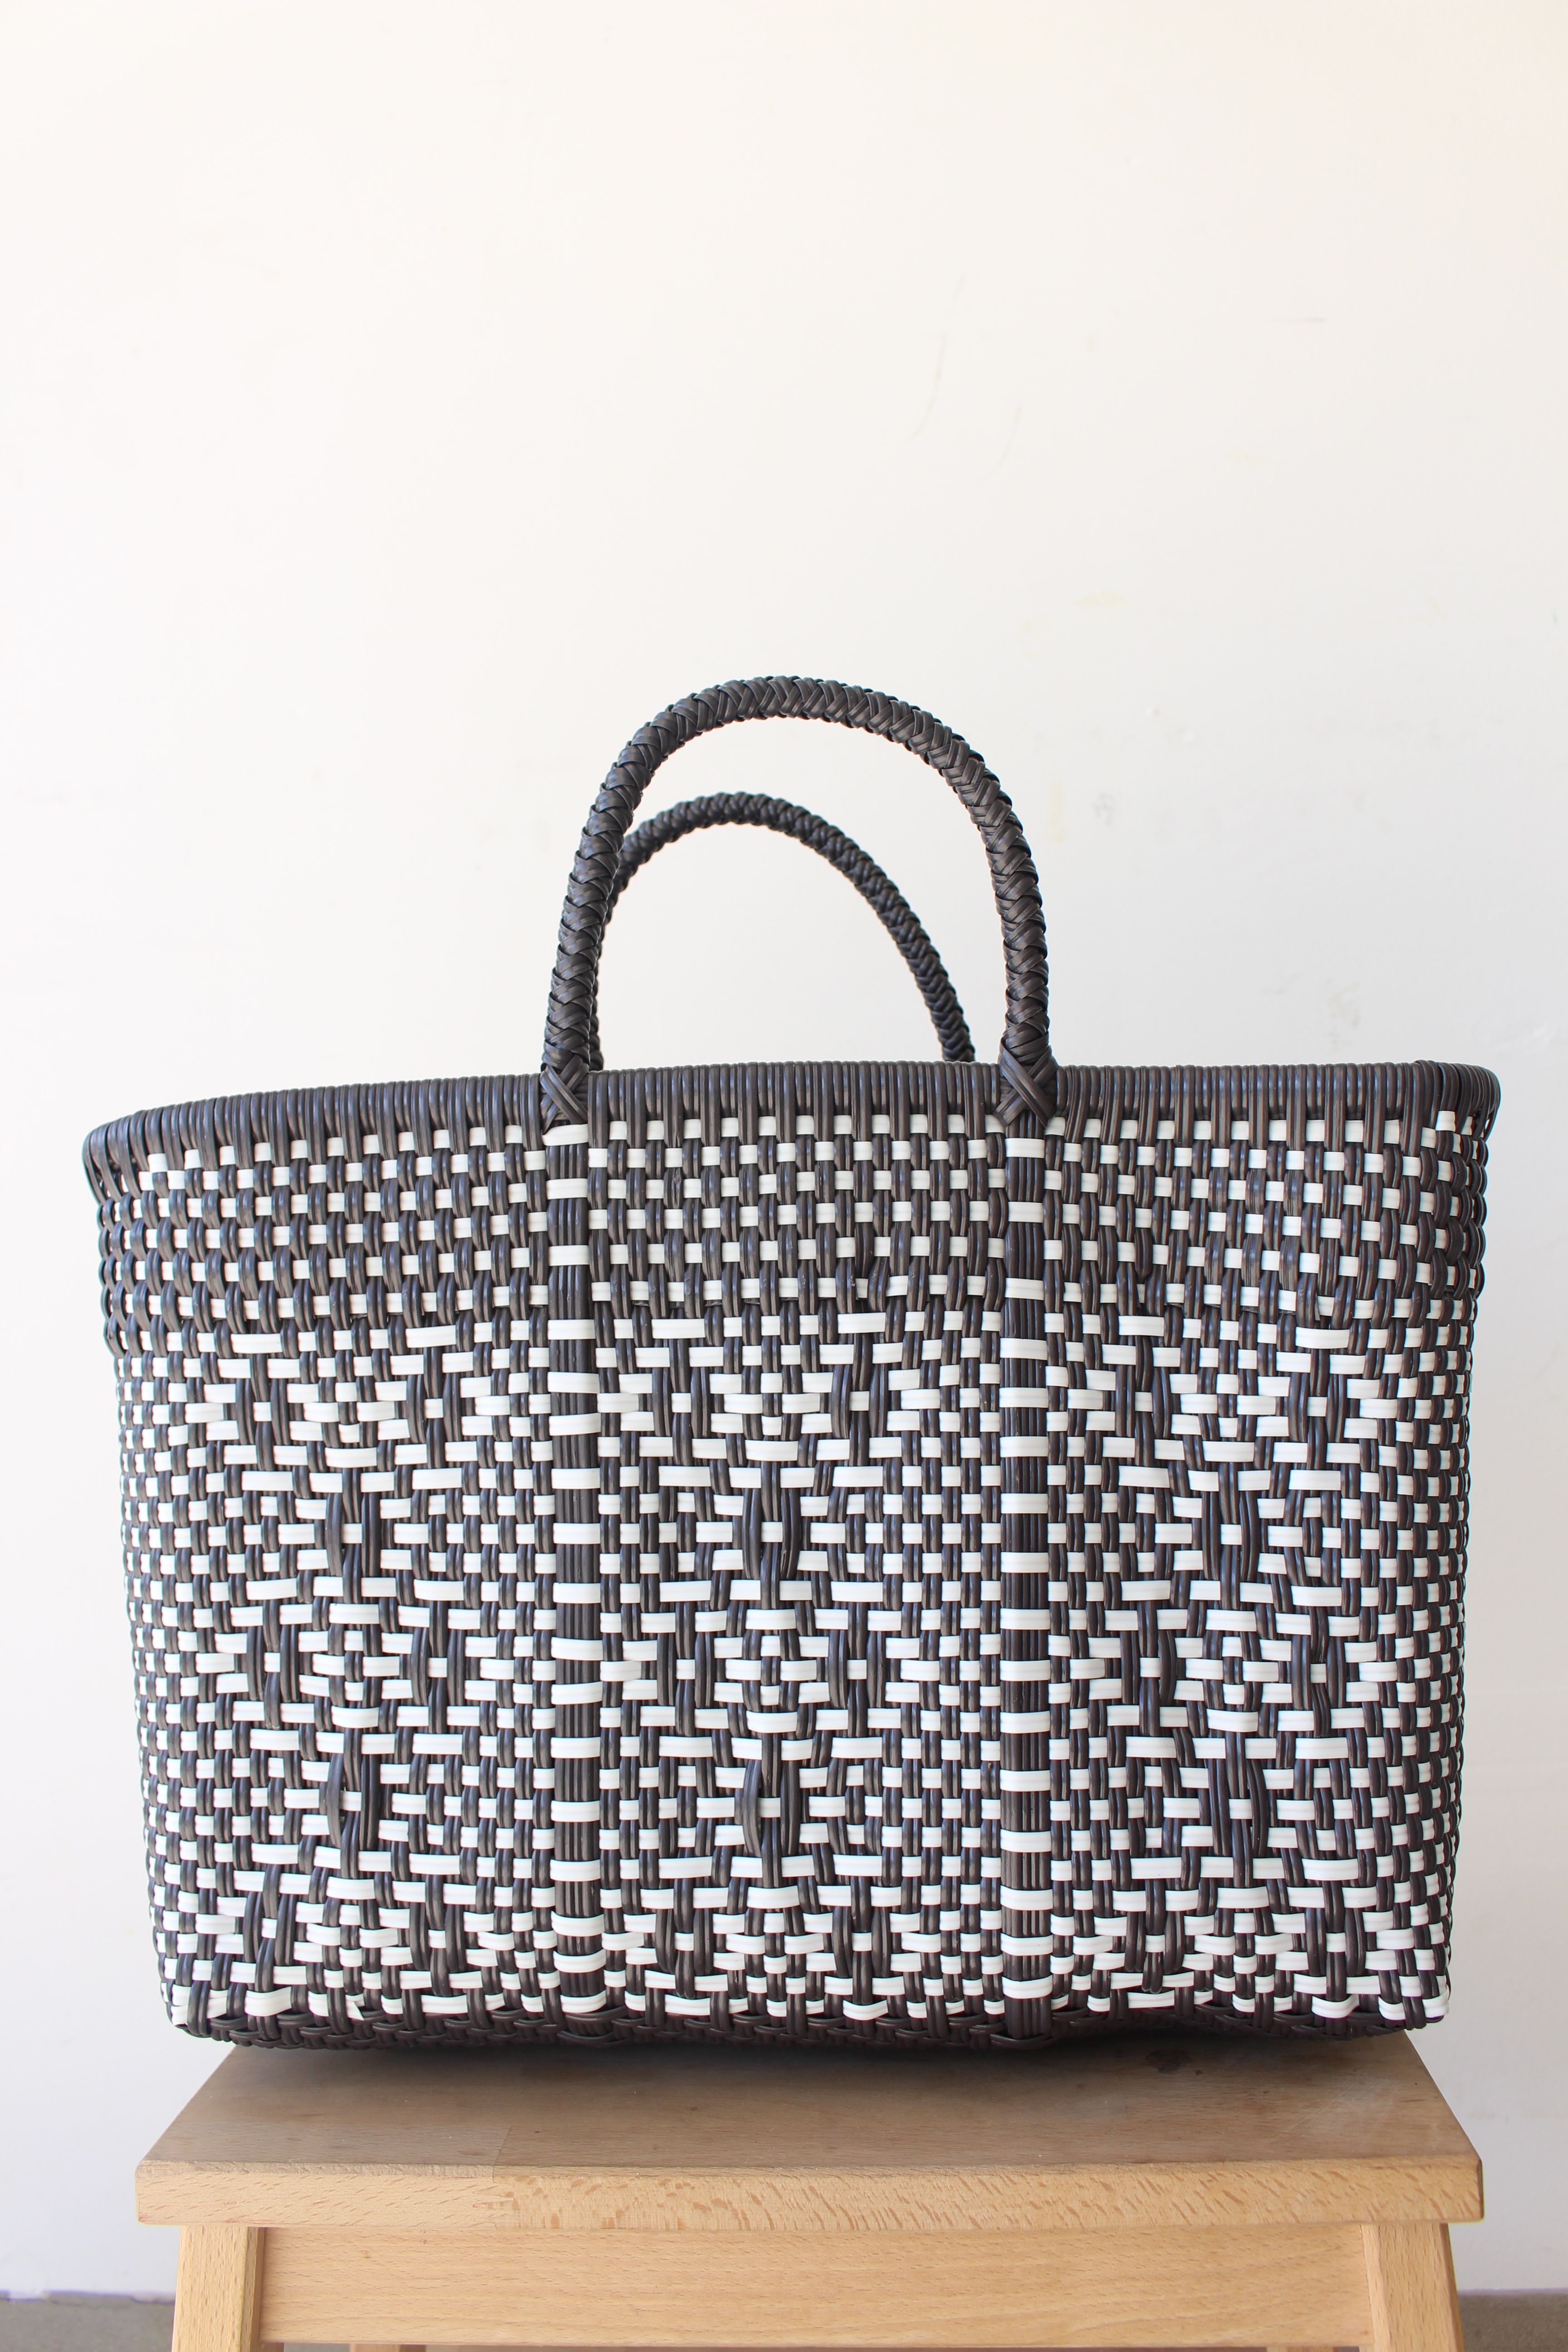 Mexican Tote Bag Mexico Handbags Oaxaca Meximexi Handbag Market Beach Woven